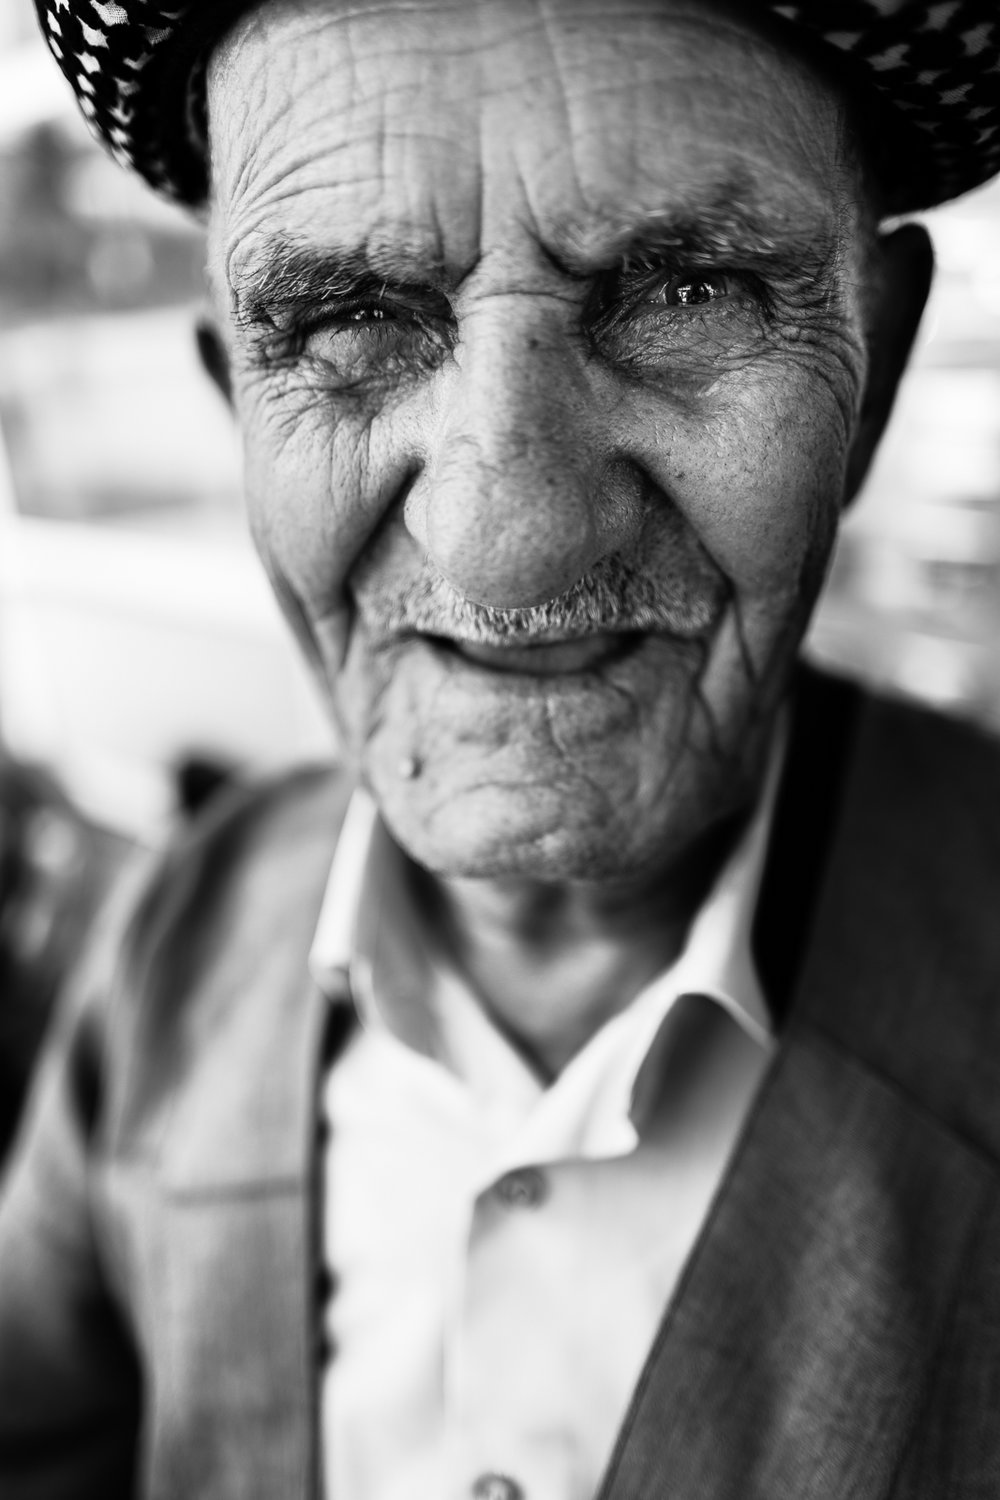 An old kurdish man in Dahuk, Iraq